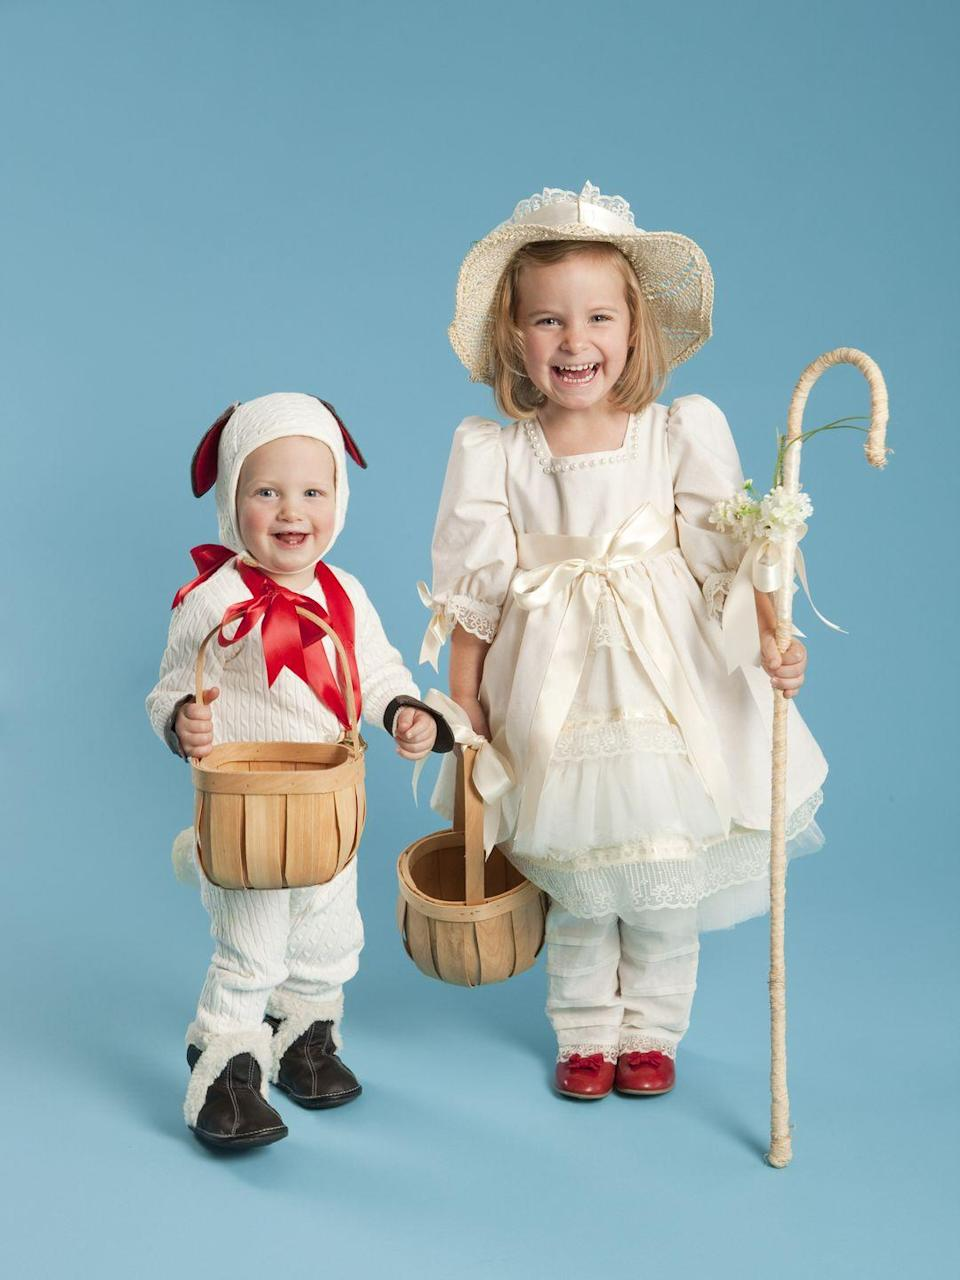 """<p>Any nursey-rhyme loving kid will be thrilled to dress up as Little Bo Peep or one of her wayward sheep. And with a frilly dress and cozy sheep outfit, this costume is absolutely adorable. </p><p><a class=""""link rapid-noclick-resp"""" href=""""https://www.amazon.com/Wooly-Sheep-Costume-Toddlers-Little/dp/B0085120TU/?tag=syn-yahoo-20&ascsubtag=%5Bartid%7C10055.g.33300912%5Bsrc%7Cyahoo-us"""" rel=""""nofollow noopener"""" target=""""_blank"""" data-ylk=""""slk:SHOP SHEEP COSTUMES"""">SHOP SHEEP COSTUMES</a></p><p><a class=""""link rapid-noclick-resp"""" href=""""https://www.amazon.com/Princess-Paradise-Polka-Costume-Multicolor/dp/B0056WR4YC/?tag=syn-yahoo-20&ascsubtag=%5Bartid%7C10055.g.33300912%5Bsrc%7Cyahoo-us"""" rel=""""nofollow noopener"""" target=""""_blank"""" data-ylk=""""slk:SHOP LITTLE BO PEEP COSTUMES"""">SHOP LITTLE BO PEEP COSTUMES</a></p>"""